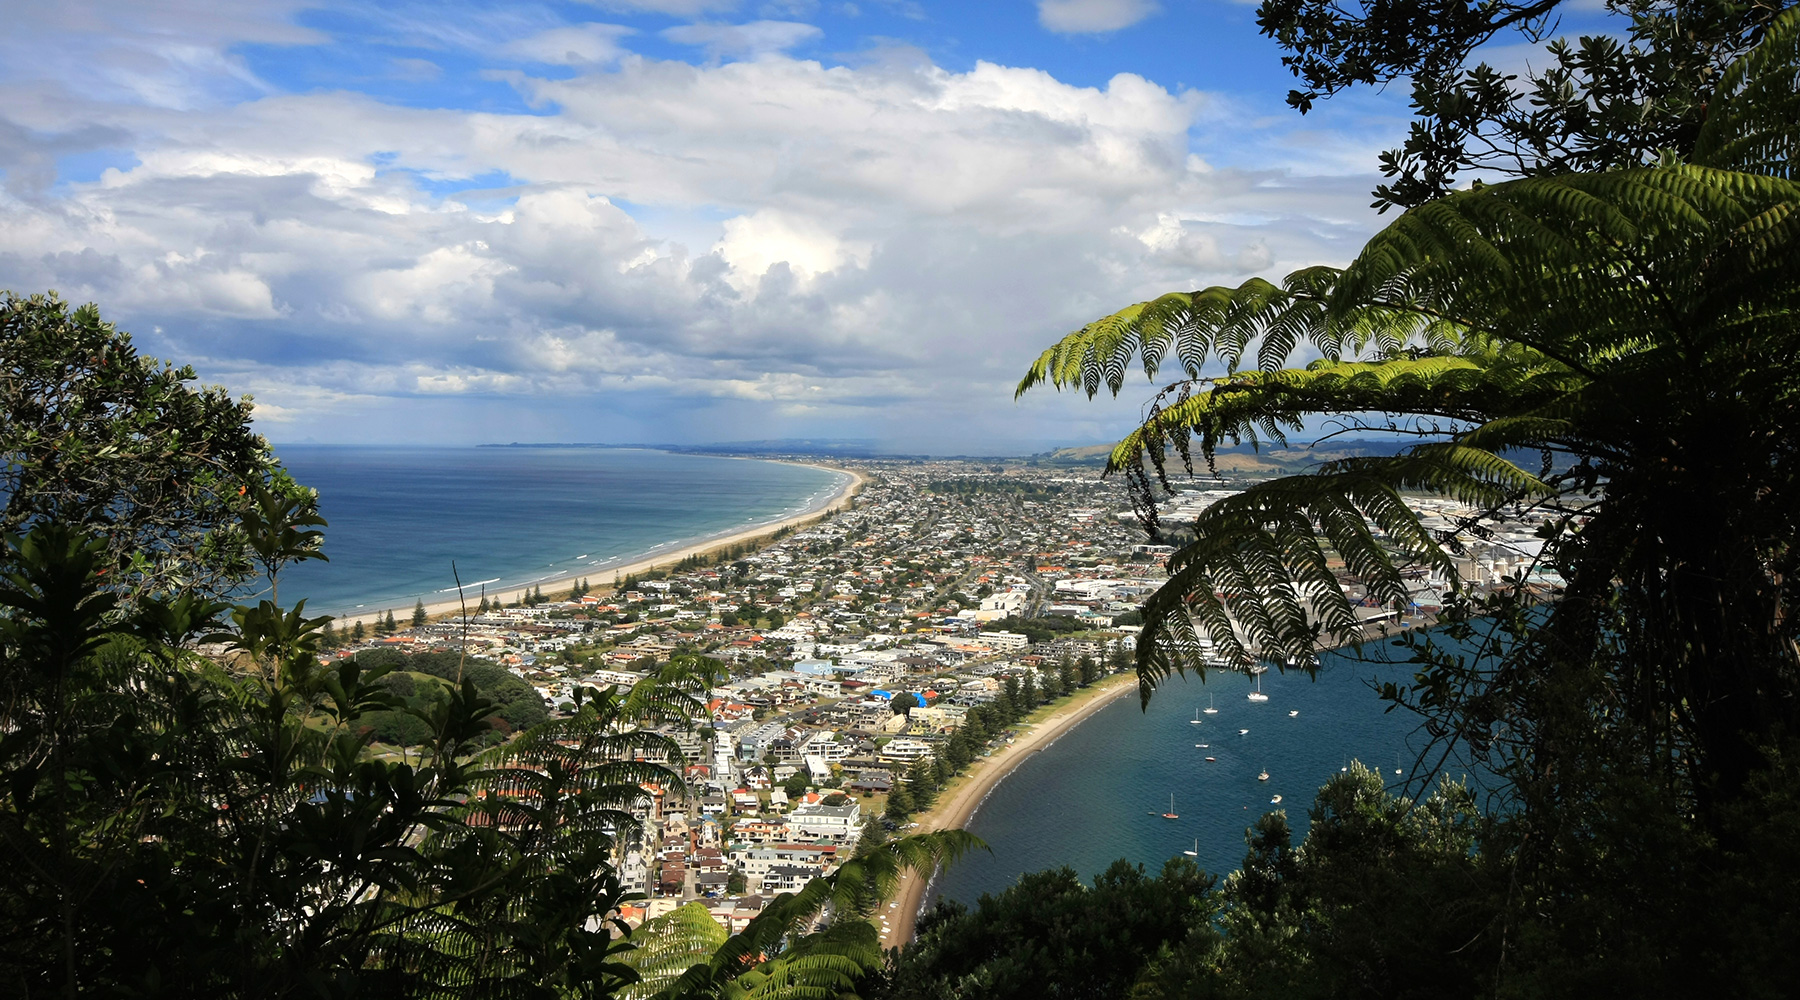 Biking the trails of Mount Maunganui in Tauranga will deliver amazing views.